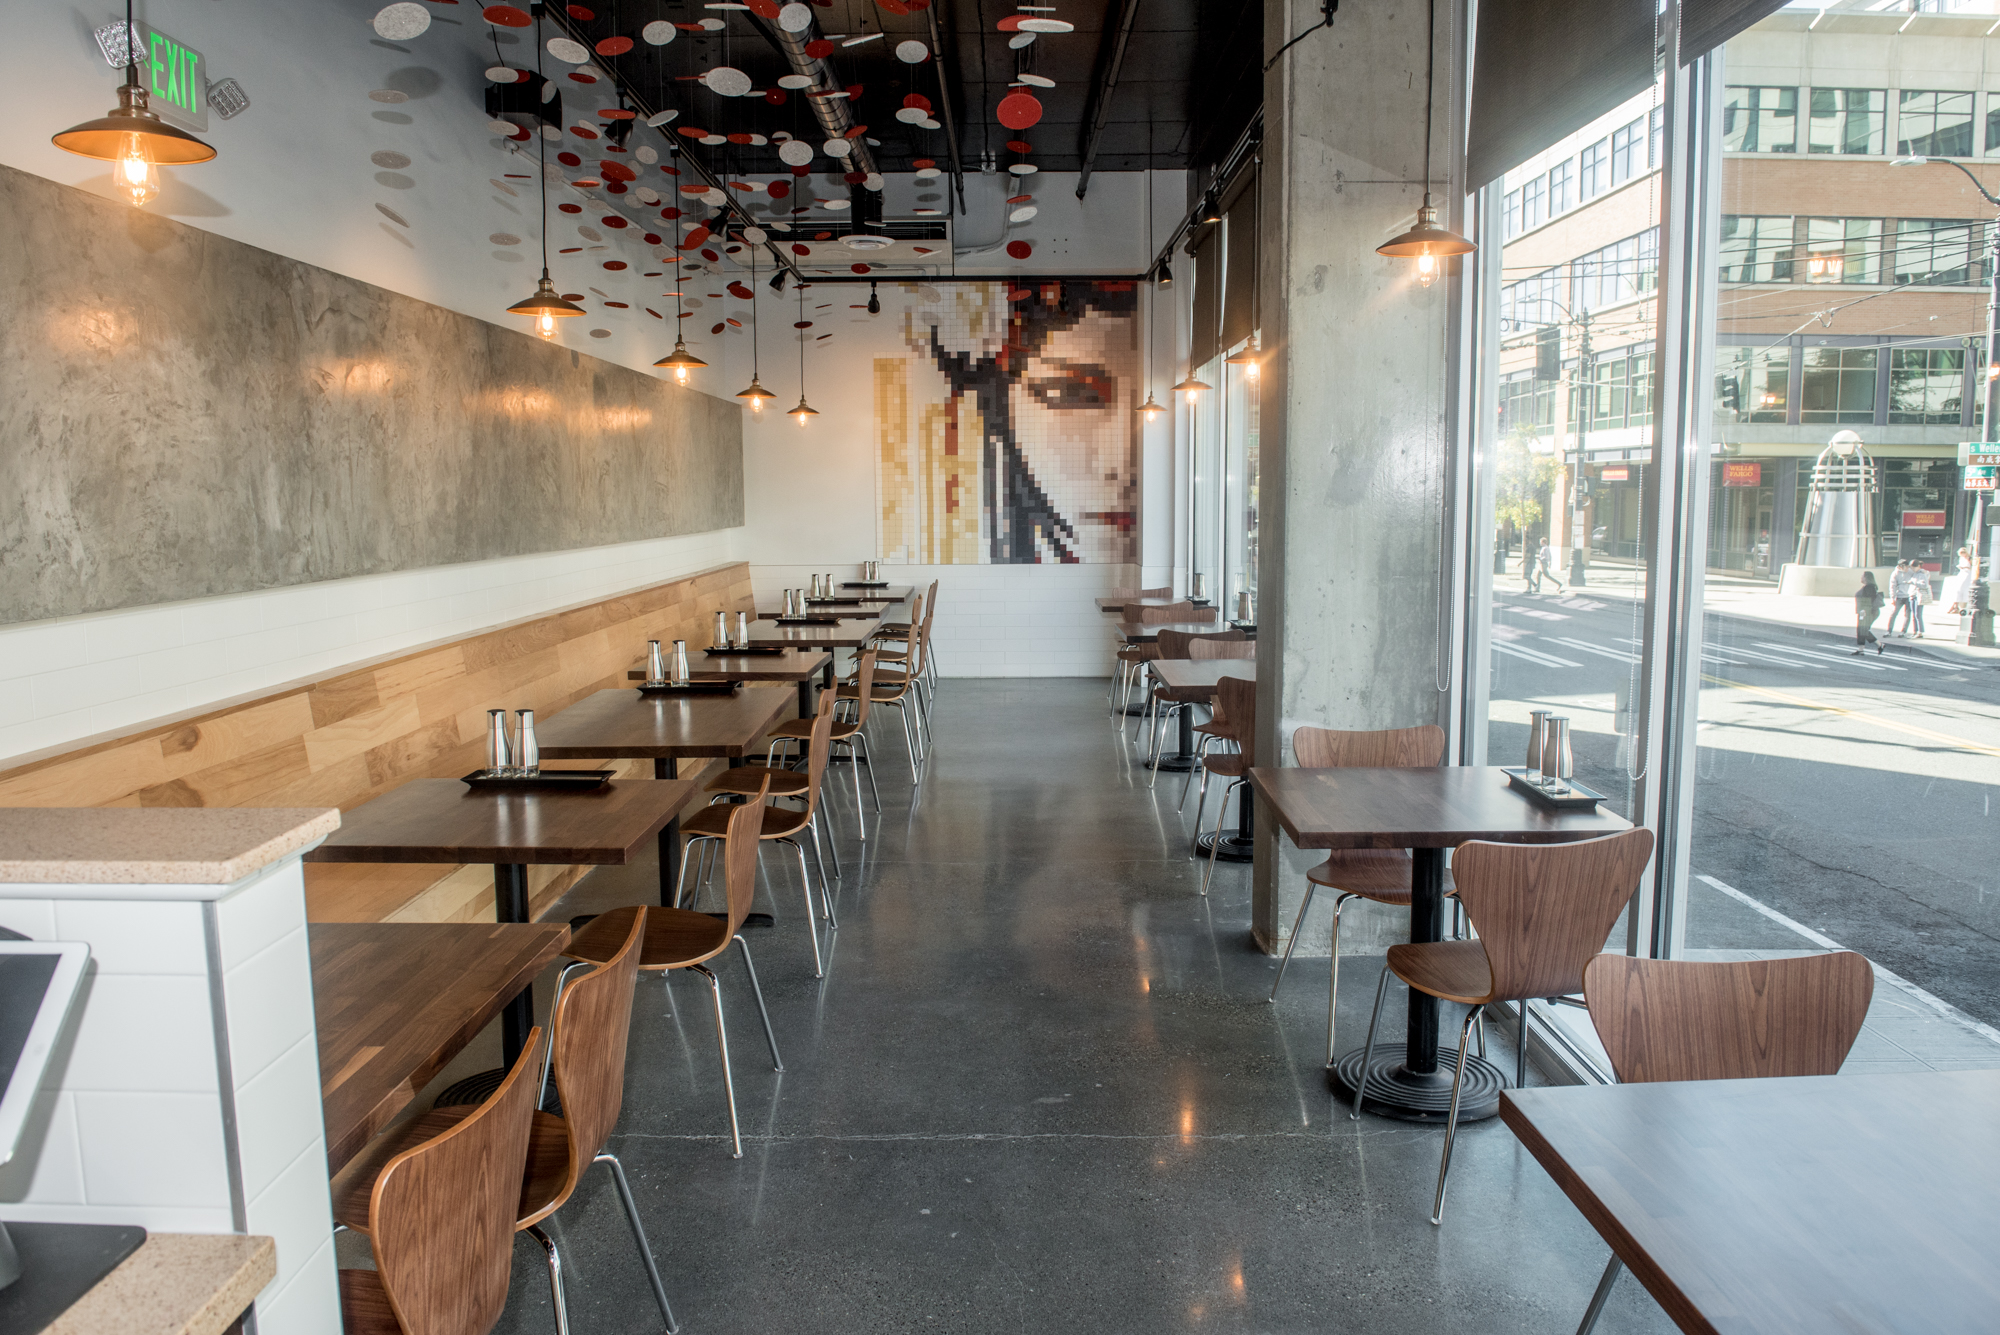 Eater Awards 2017 Restaurant Expansion of the Year winner, Dough Zone  Dumpling House in the International District.